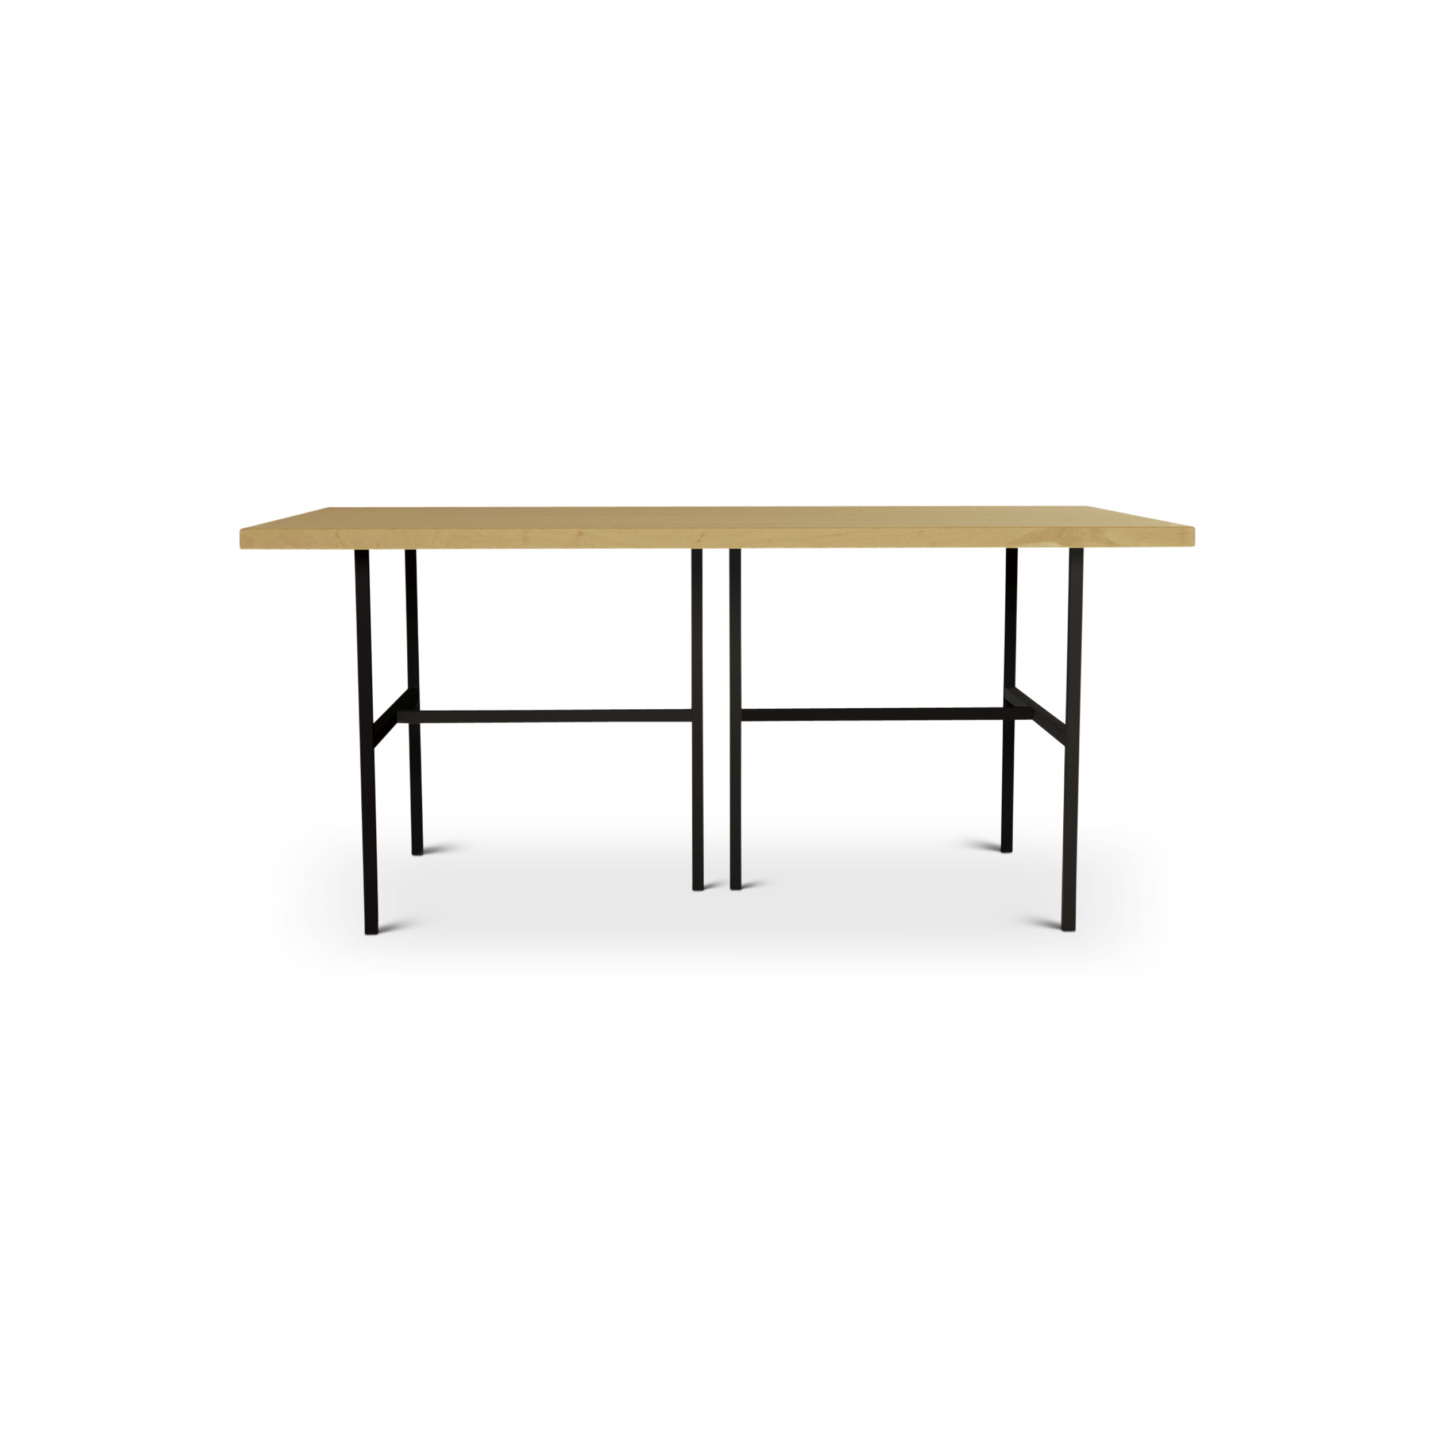 Solid maple kitchen table with black metal legs